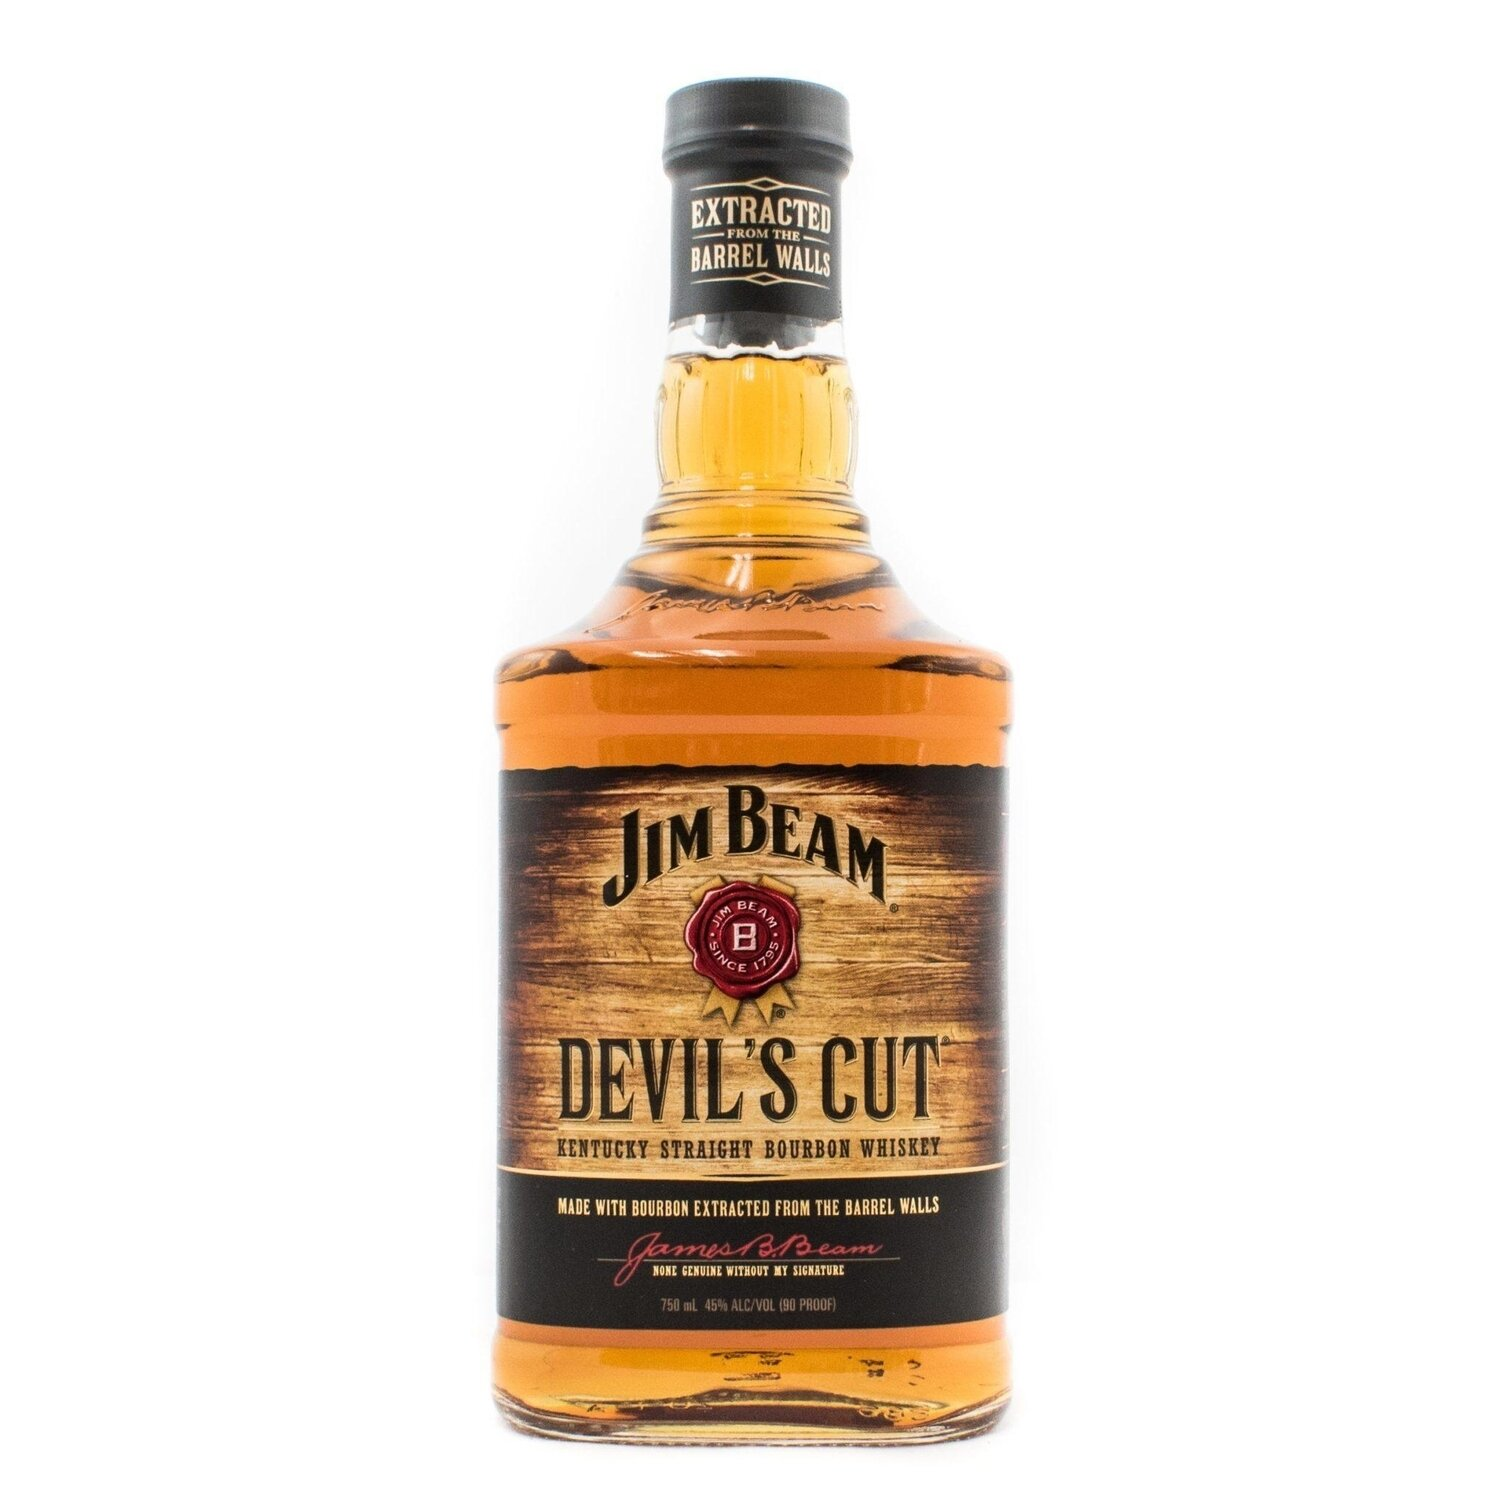 Whisky Jim beam devils cut x750cc